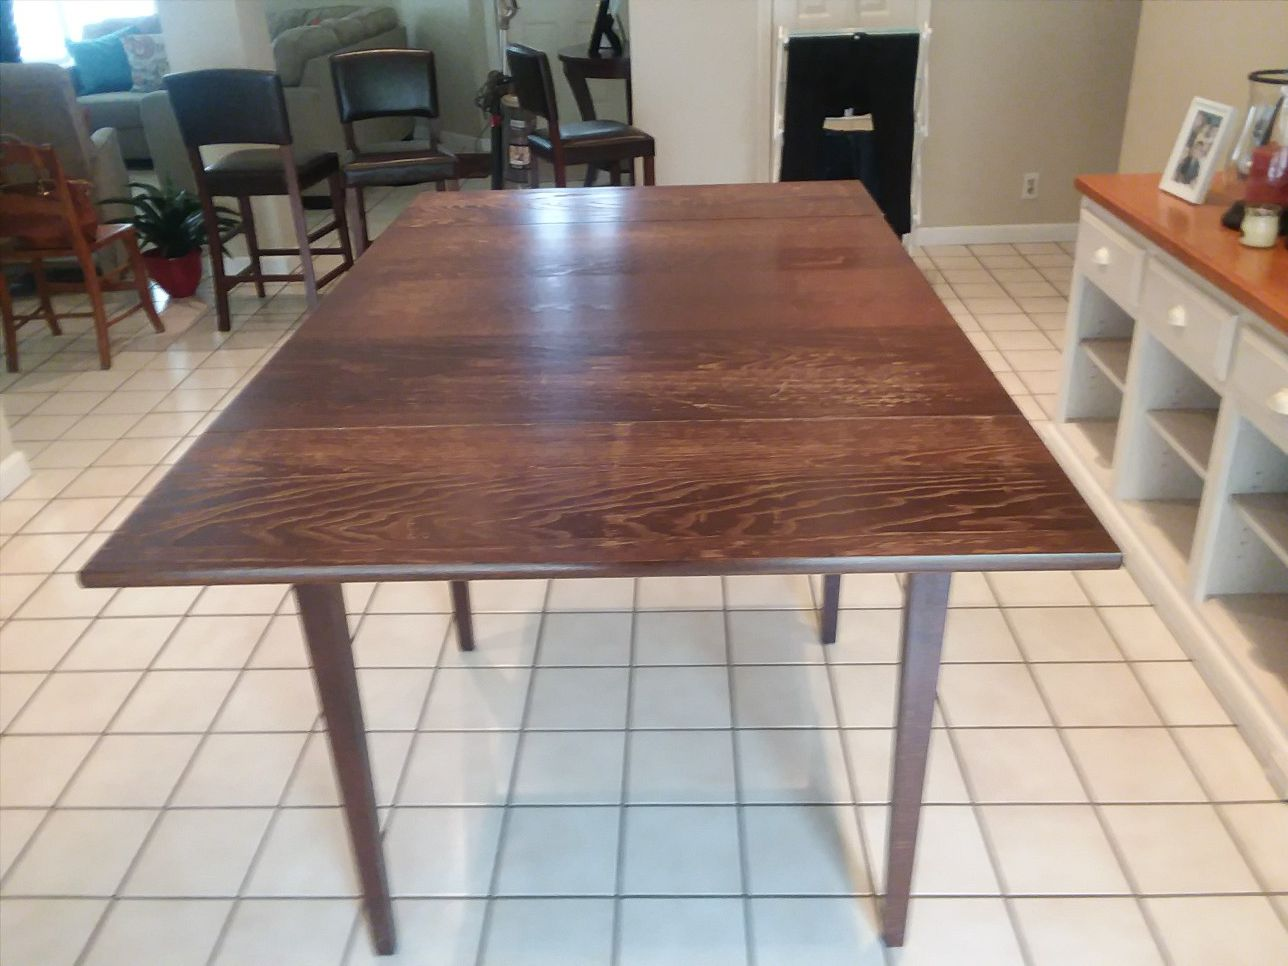 Pier One Pub Table. 3x3 extends to 5x3, height is 36. 10 years old, minor scratches.